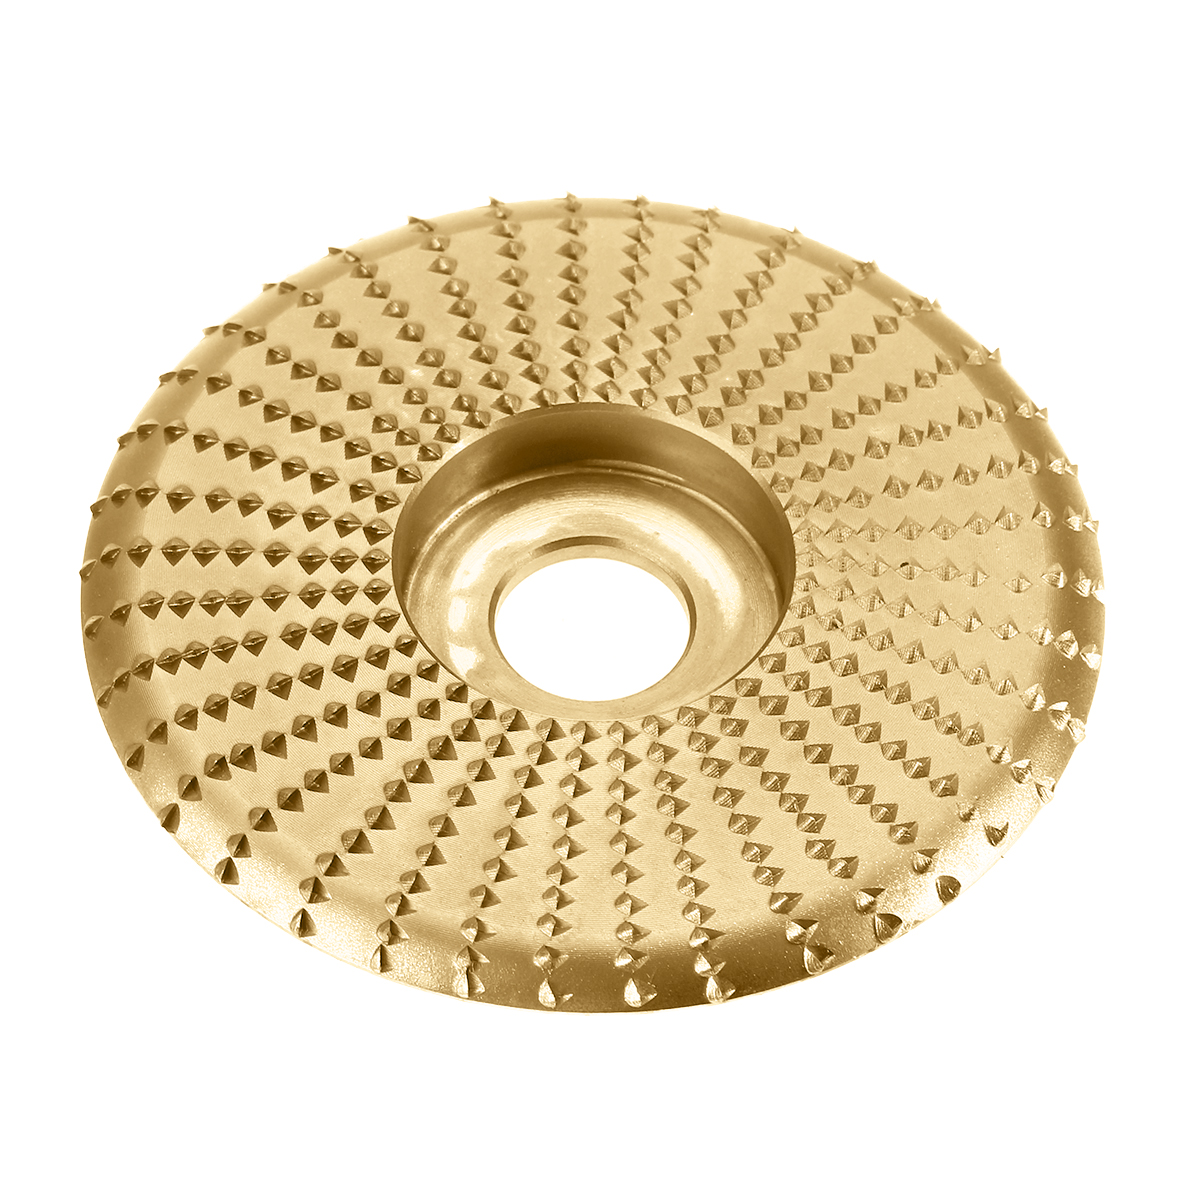 Wood Grinding Wheel Angle Grinder Disc Wood Carving Sanding Abrasive Tool For Angle Tungsten Carbide Coating Bore Shaping 16mm